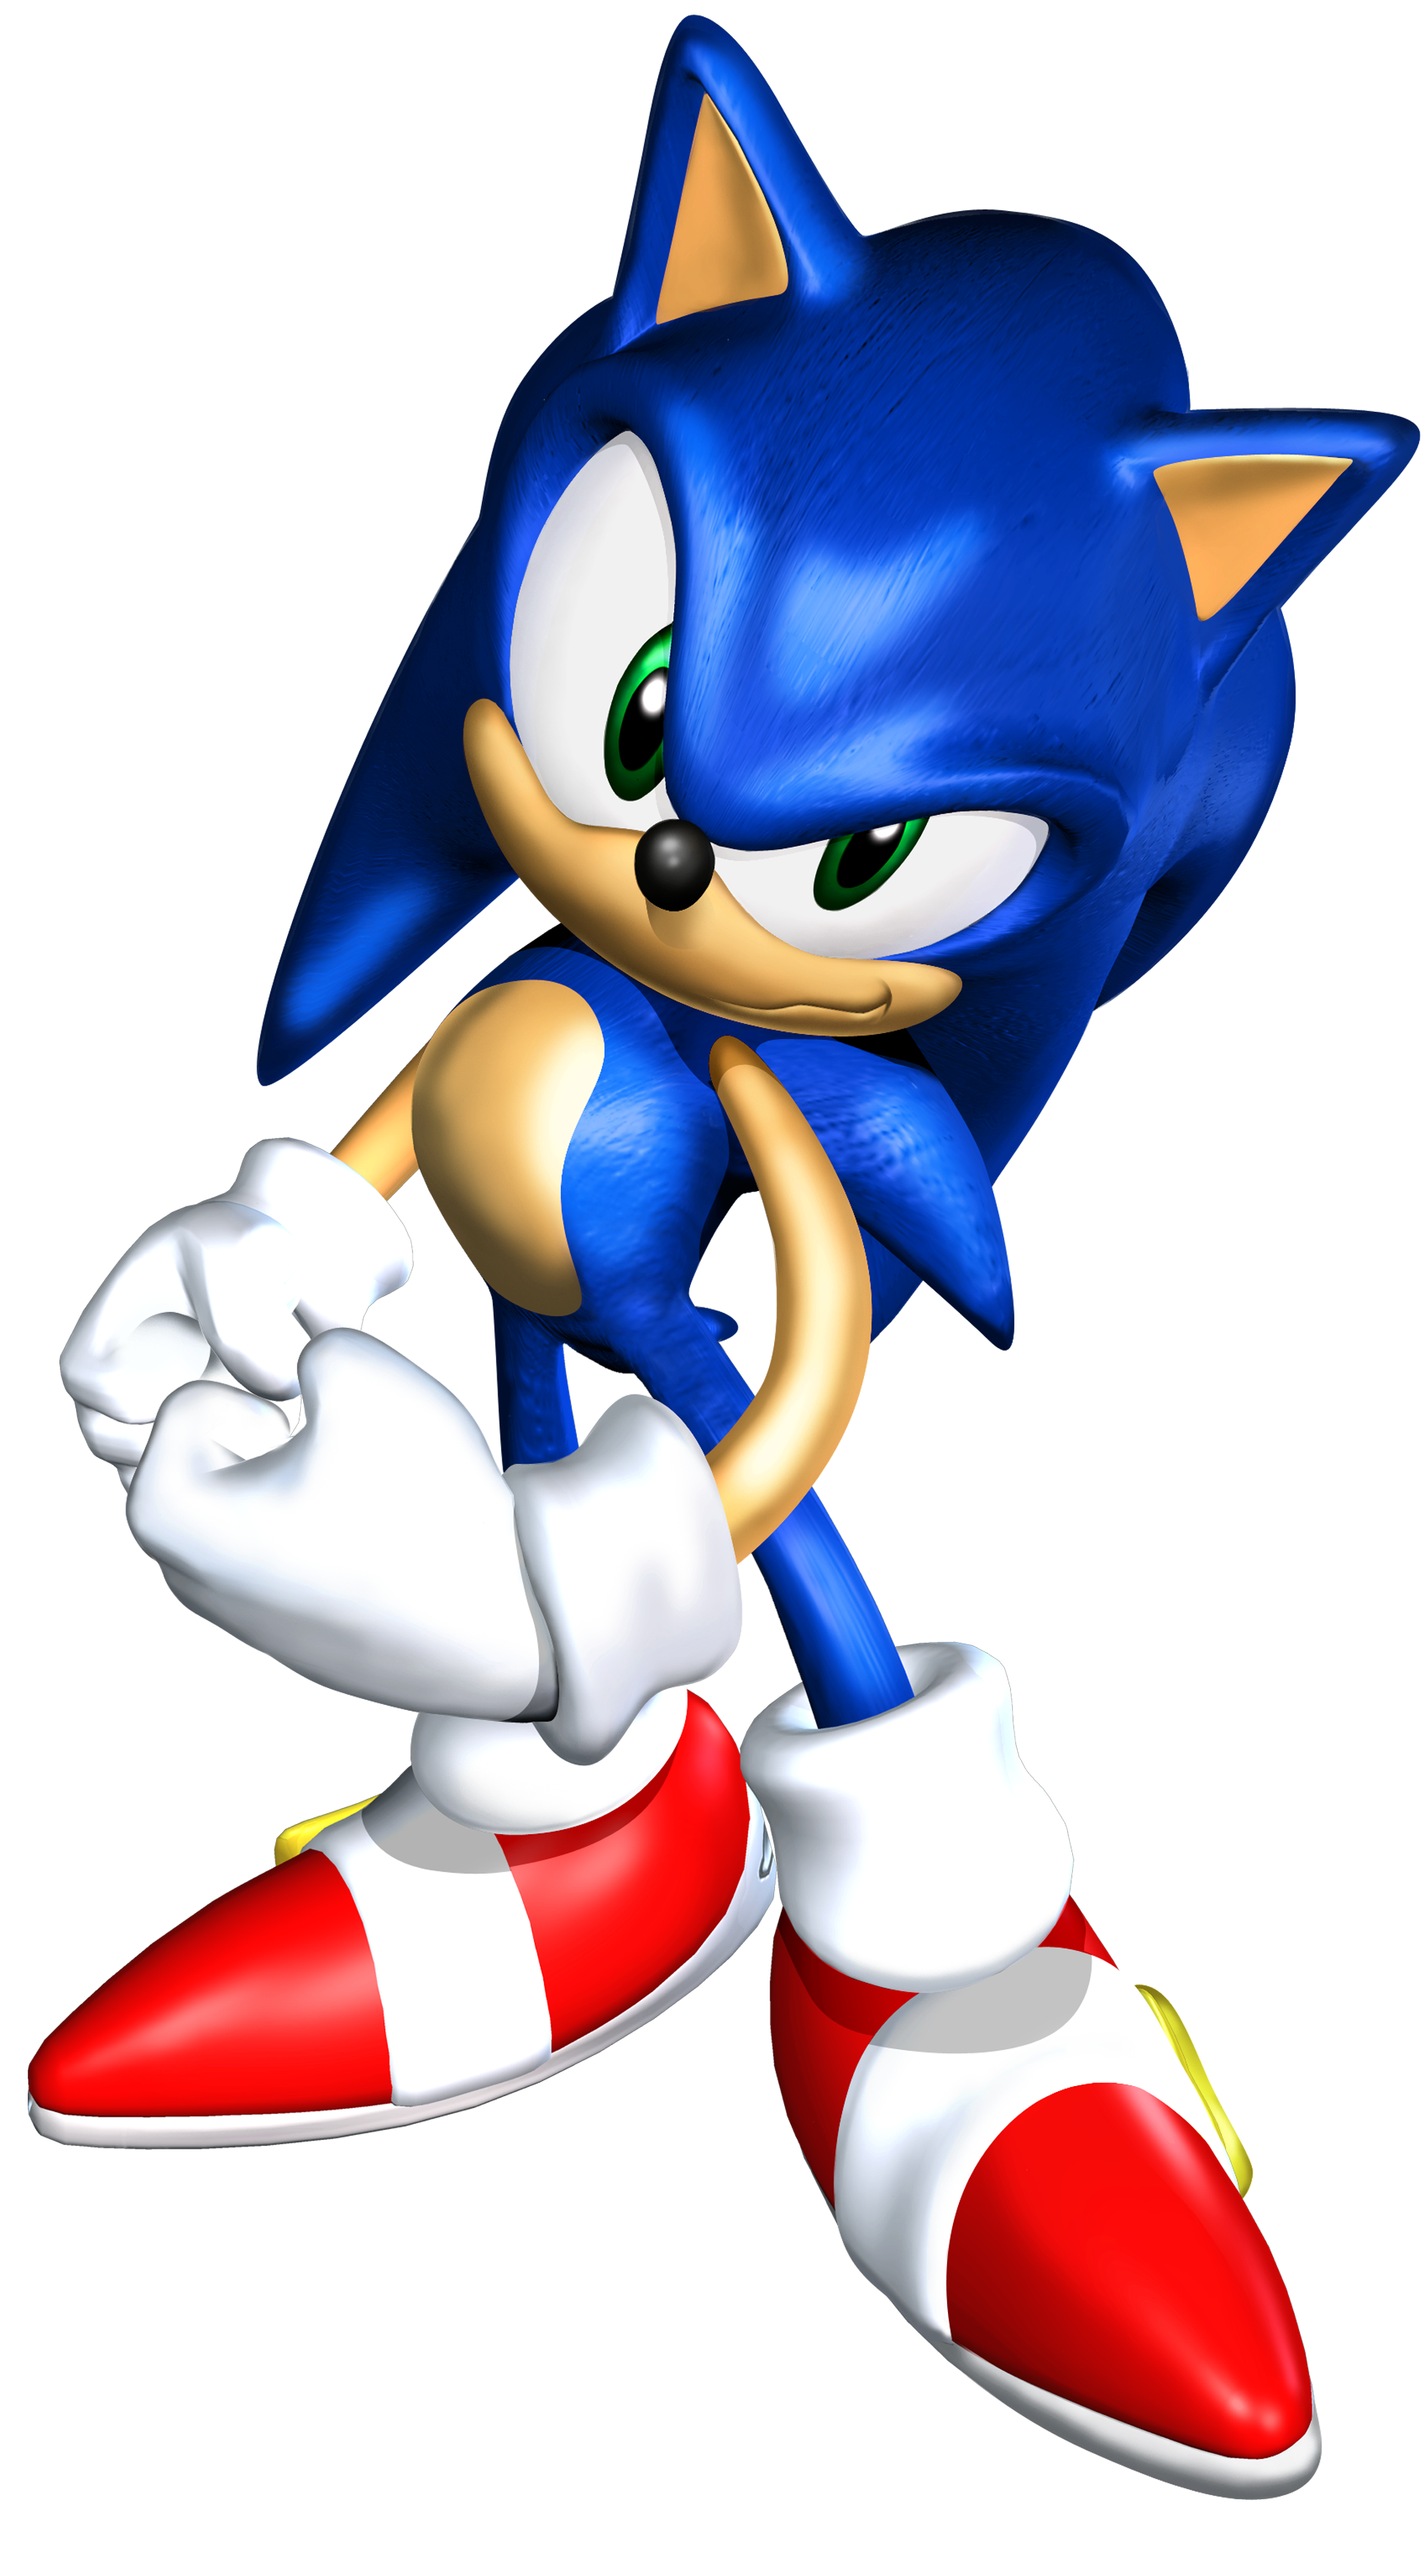 Sonic adventure png. Image dx news network